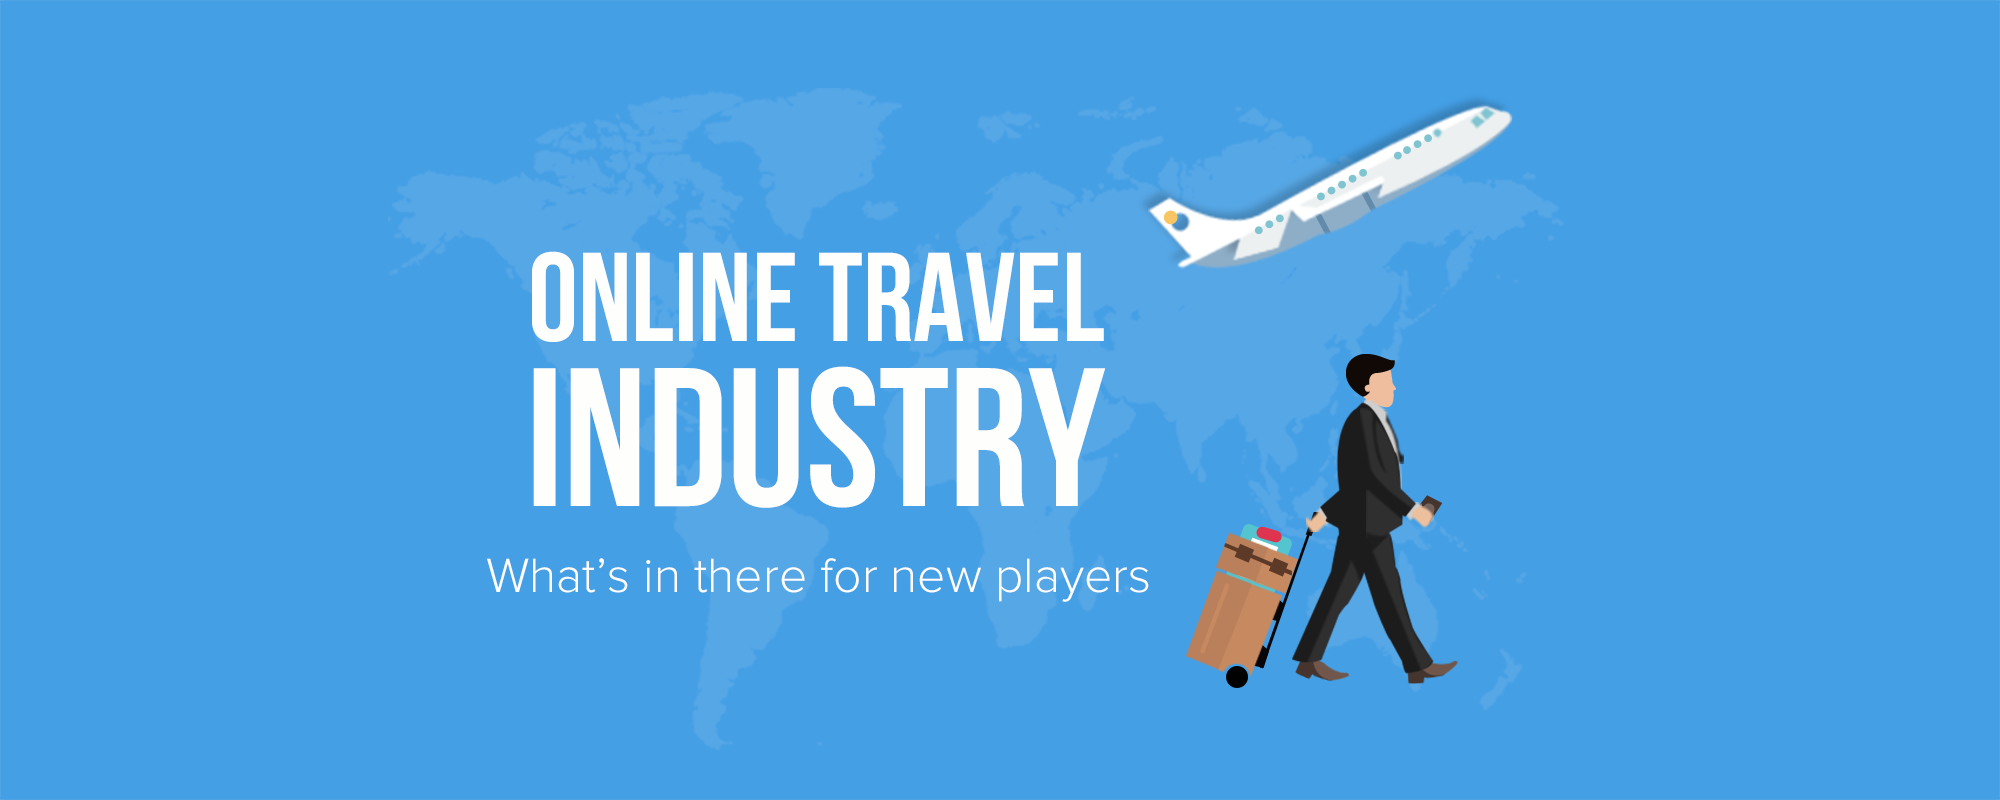 Online Travel Industry: Growth Statistics, Business Ideas & Future Opportunities